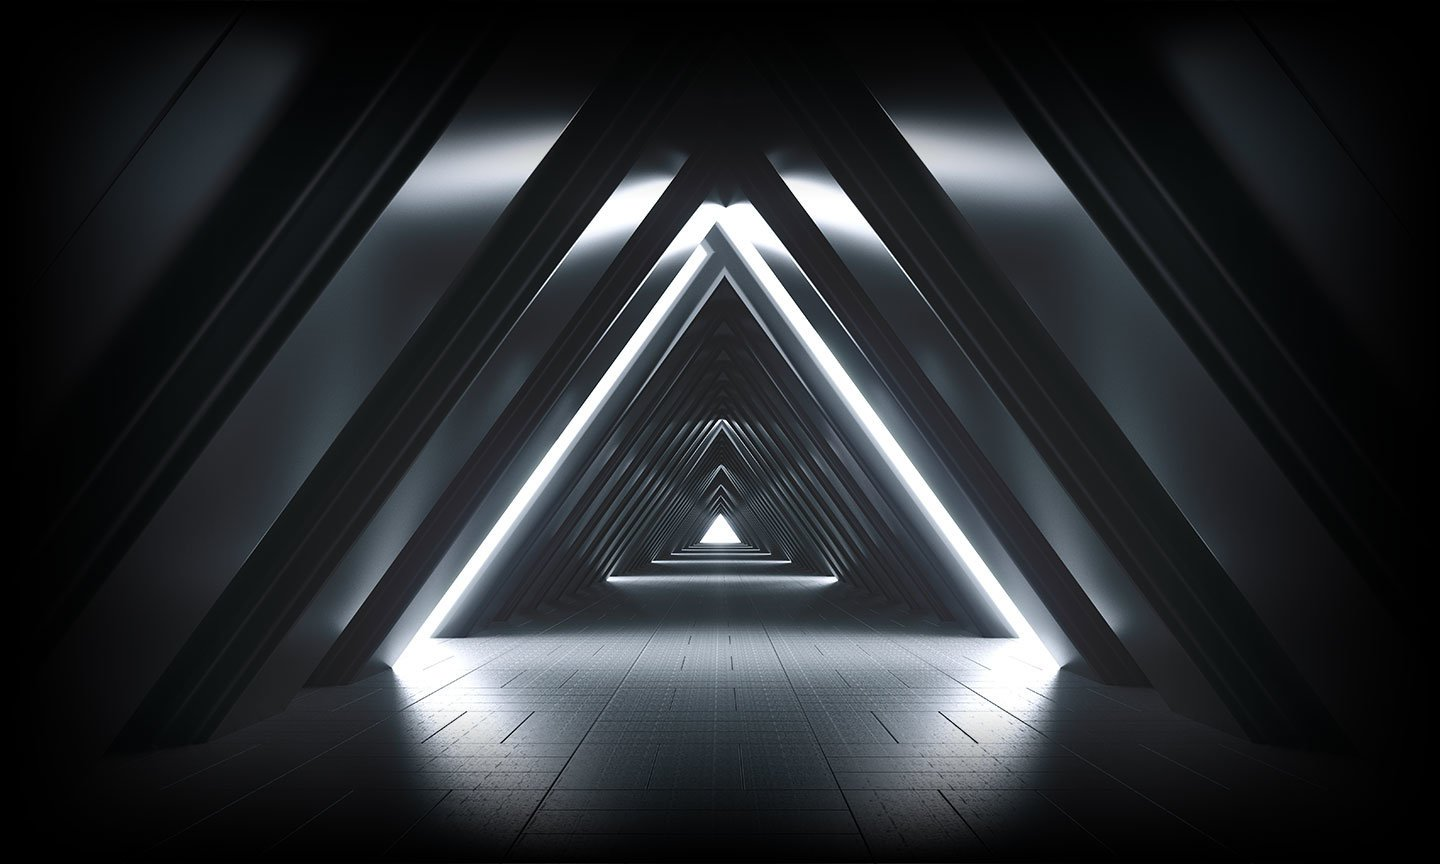 Futuristic triangular room